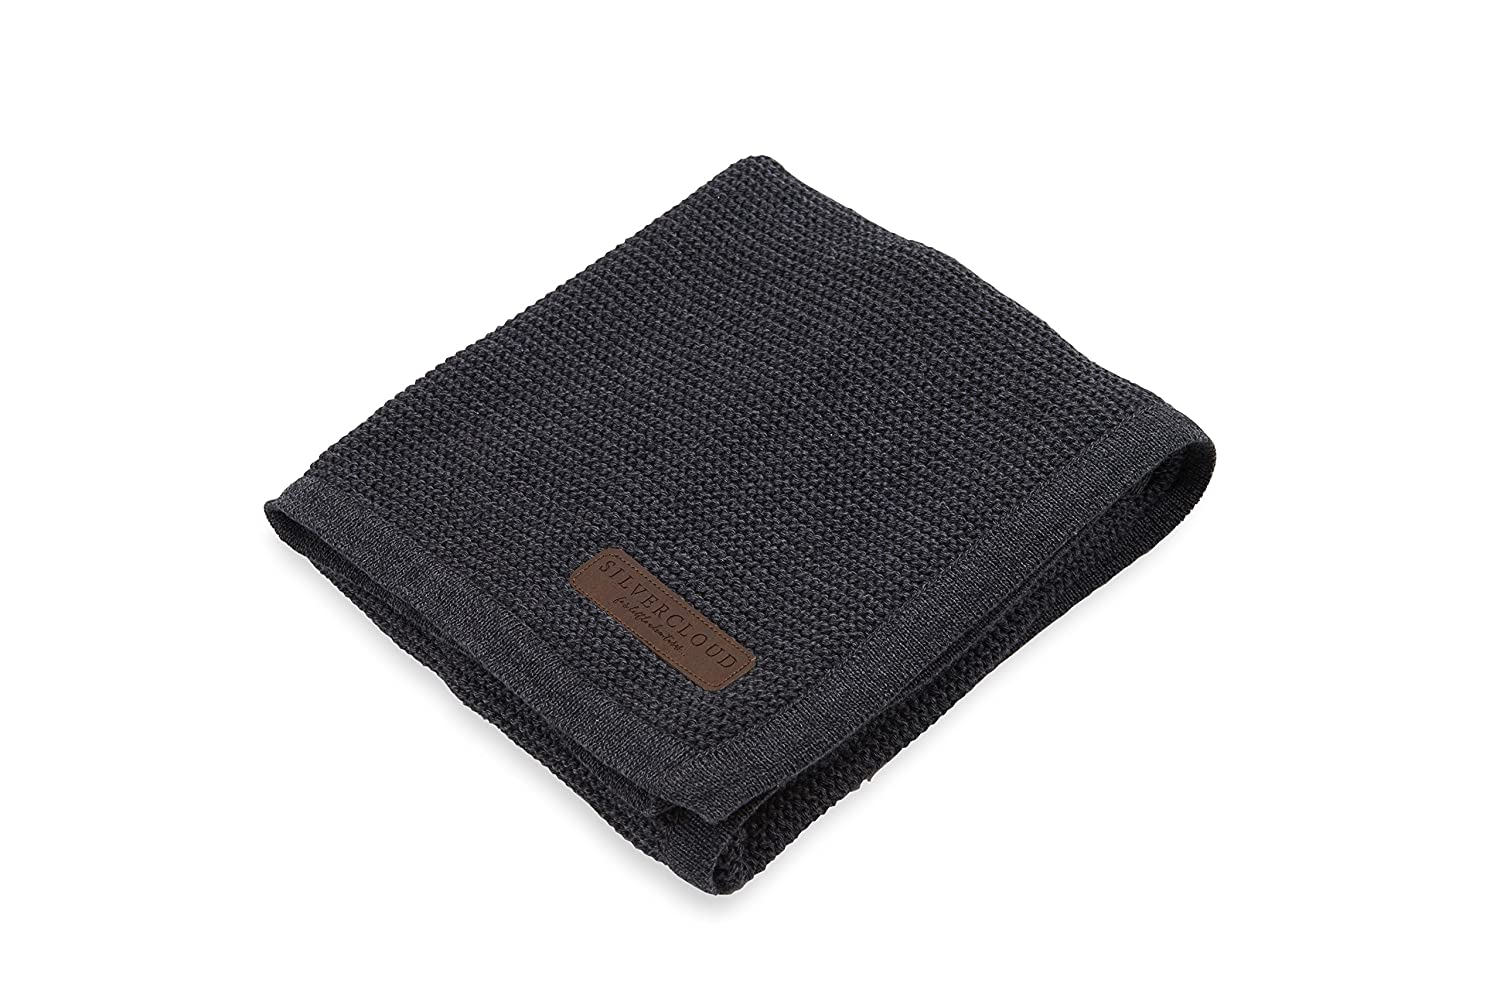 Silvercloud Travel Blanket, Dark Grey East Coast Nursery Ltd 8686